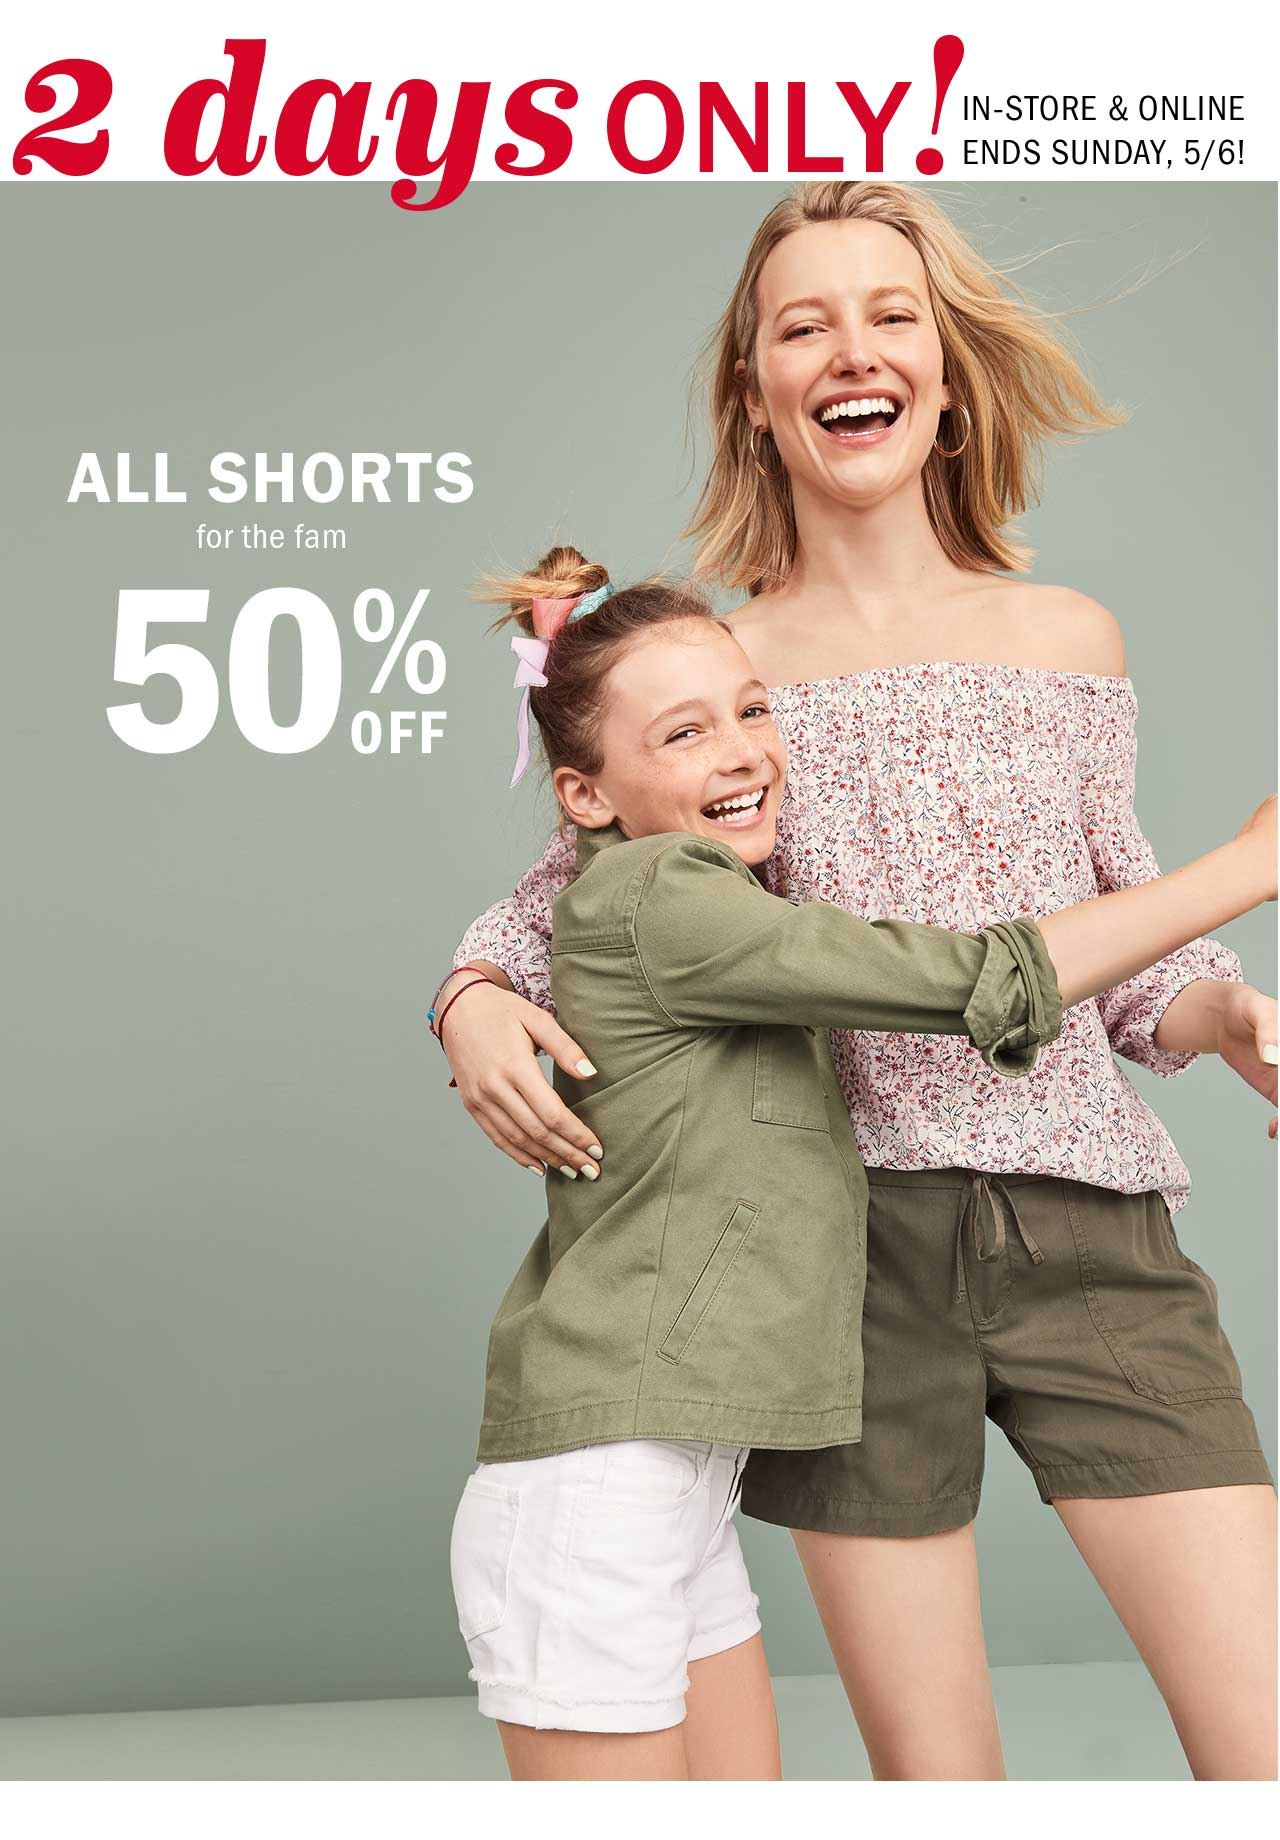 2 days ONLY! | ALL SHORTS for the fam 50% OFF